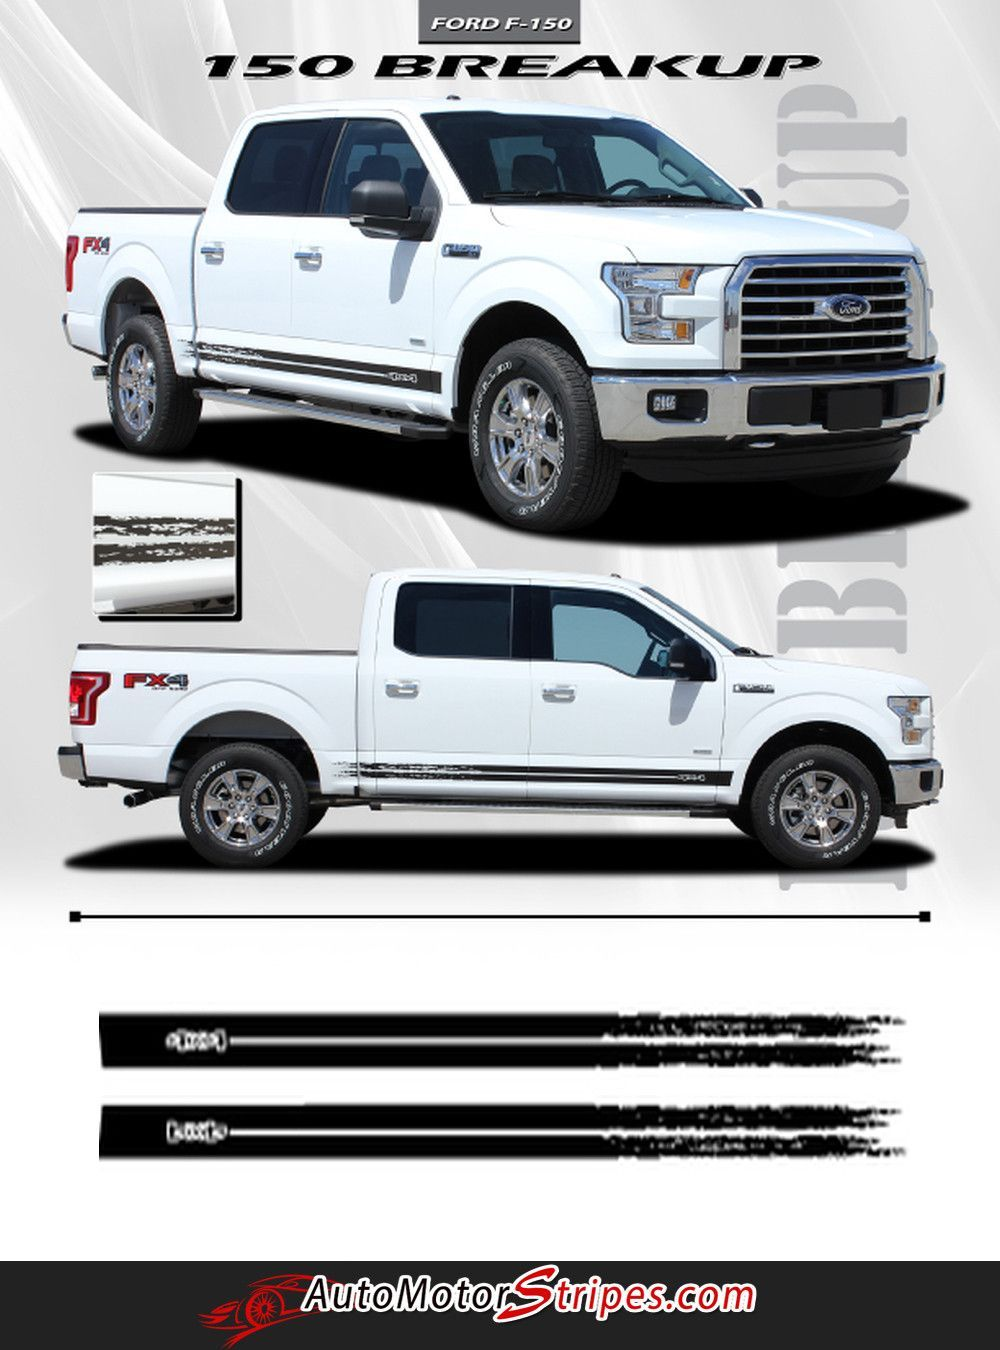 Vehicle Specific Style Ford F 150 Series Truck Breakup Lower